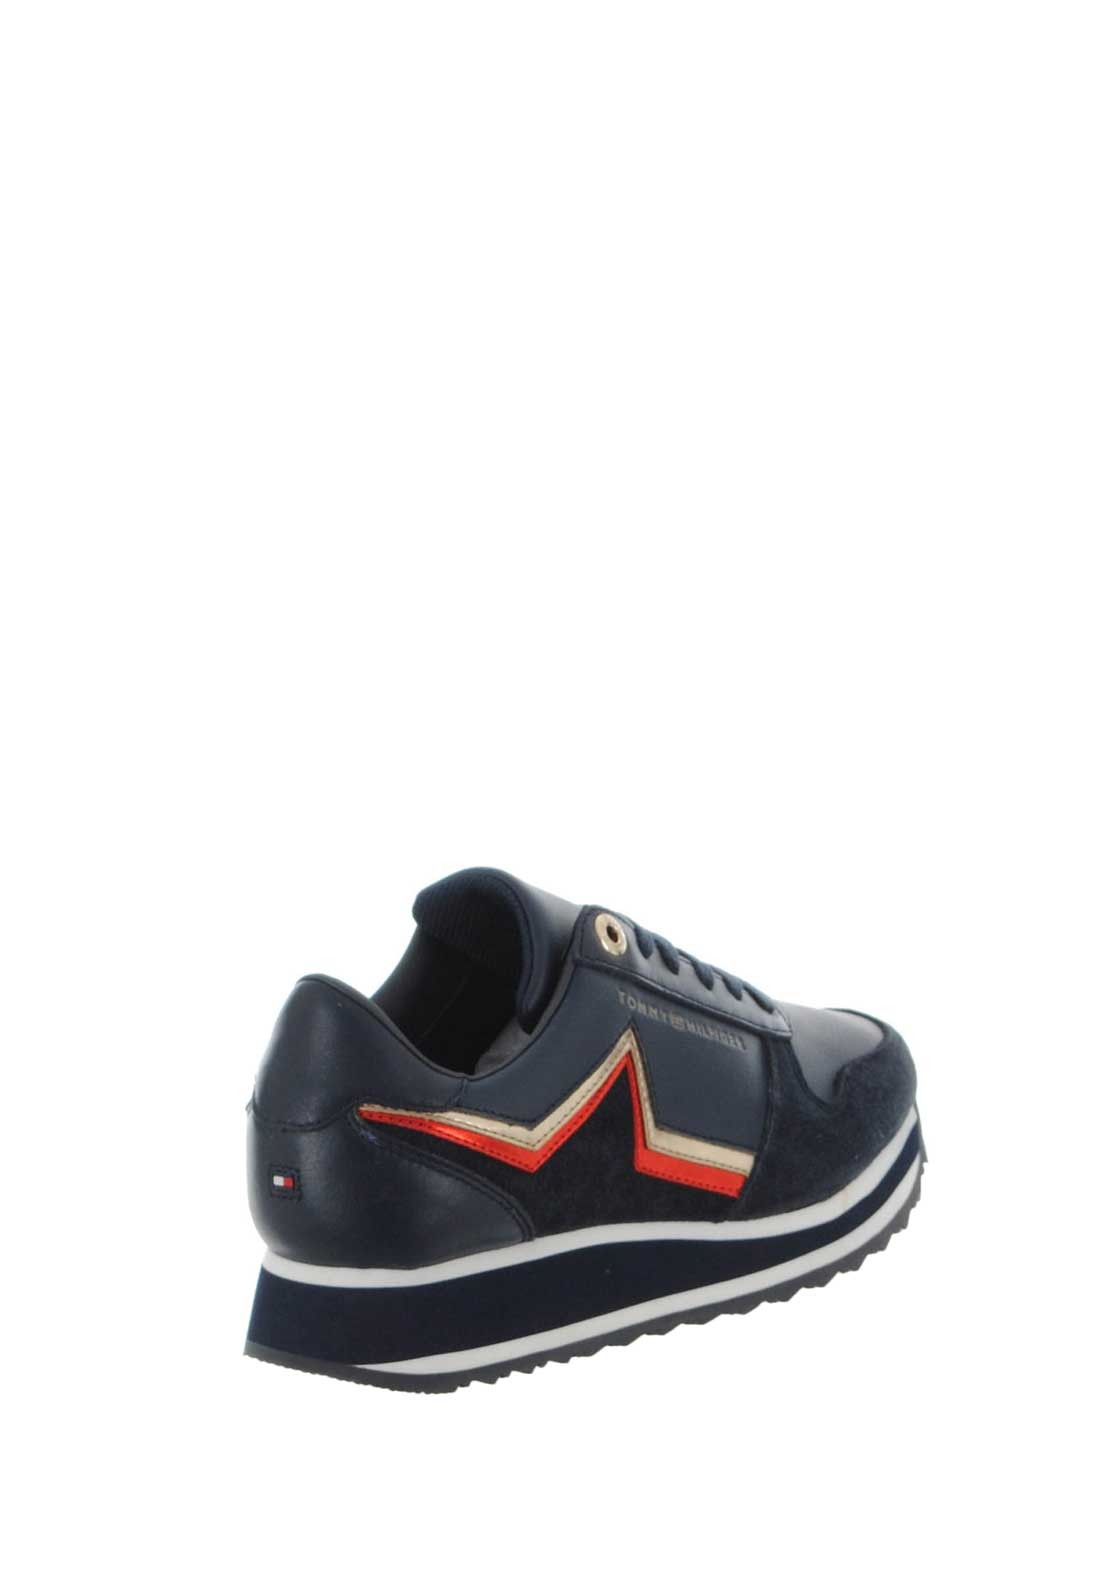 834eb60e518379 Tommy Hilfiger Womens Leather Star Trainers